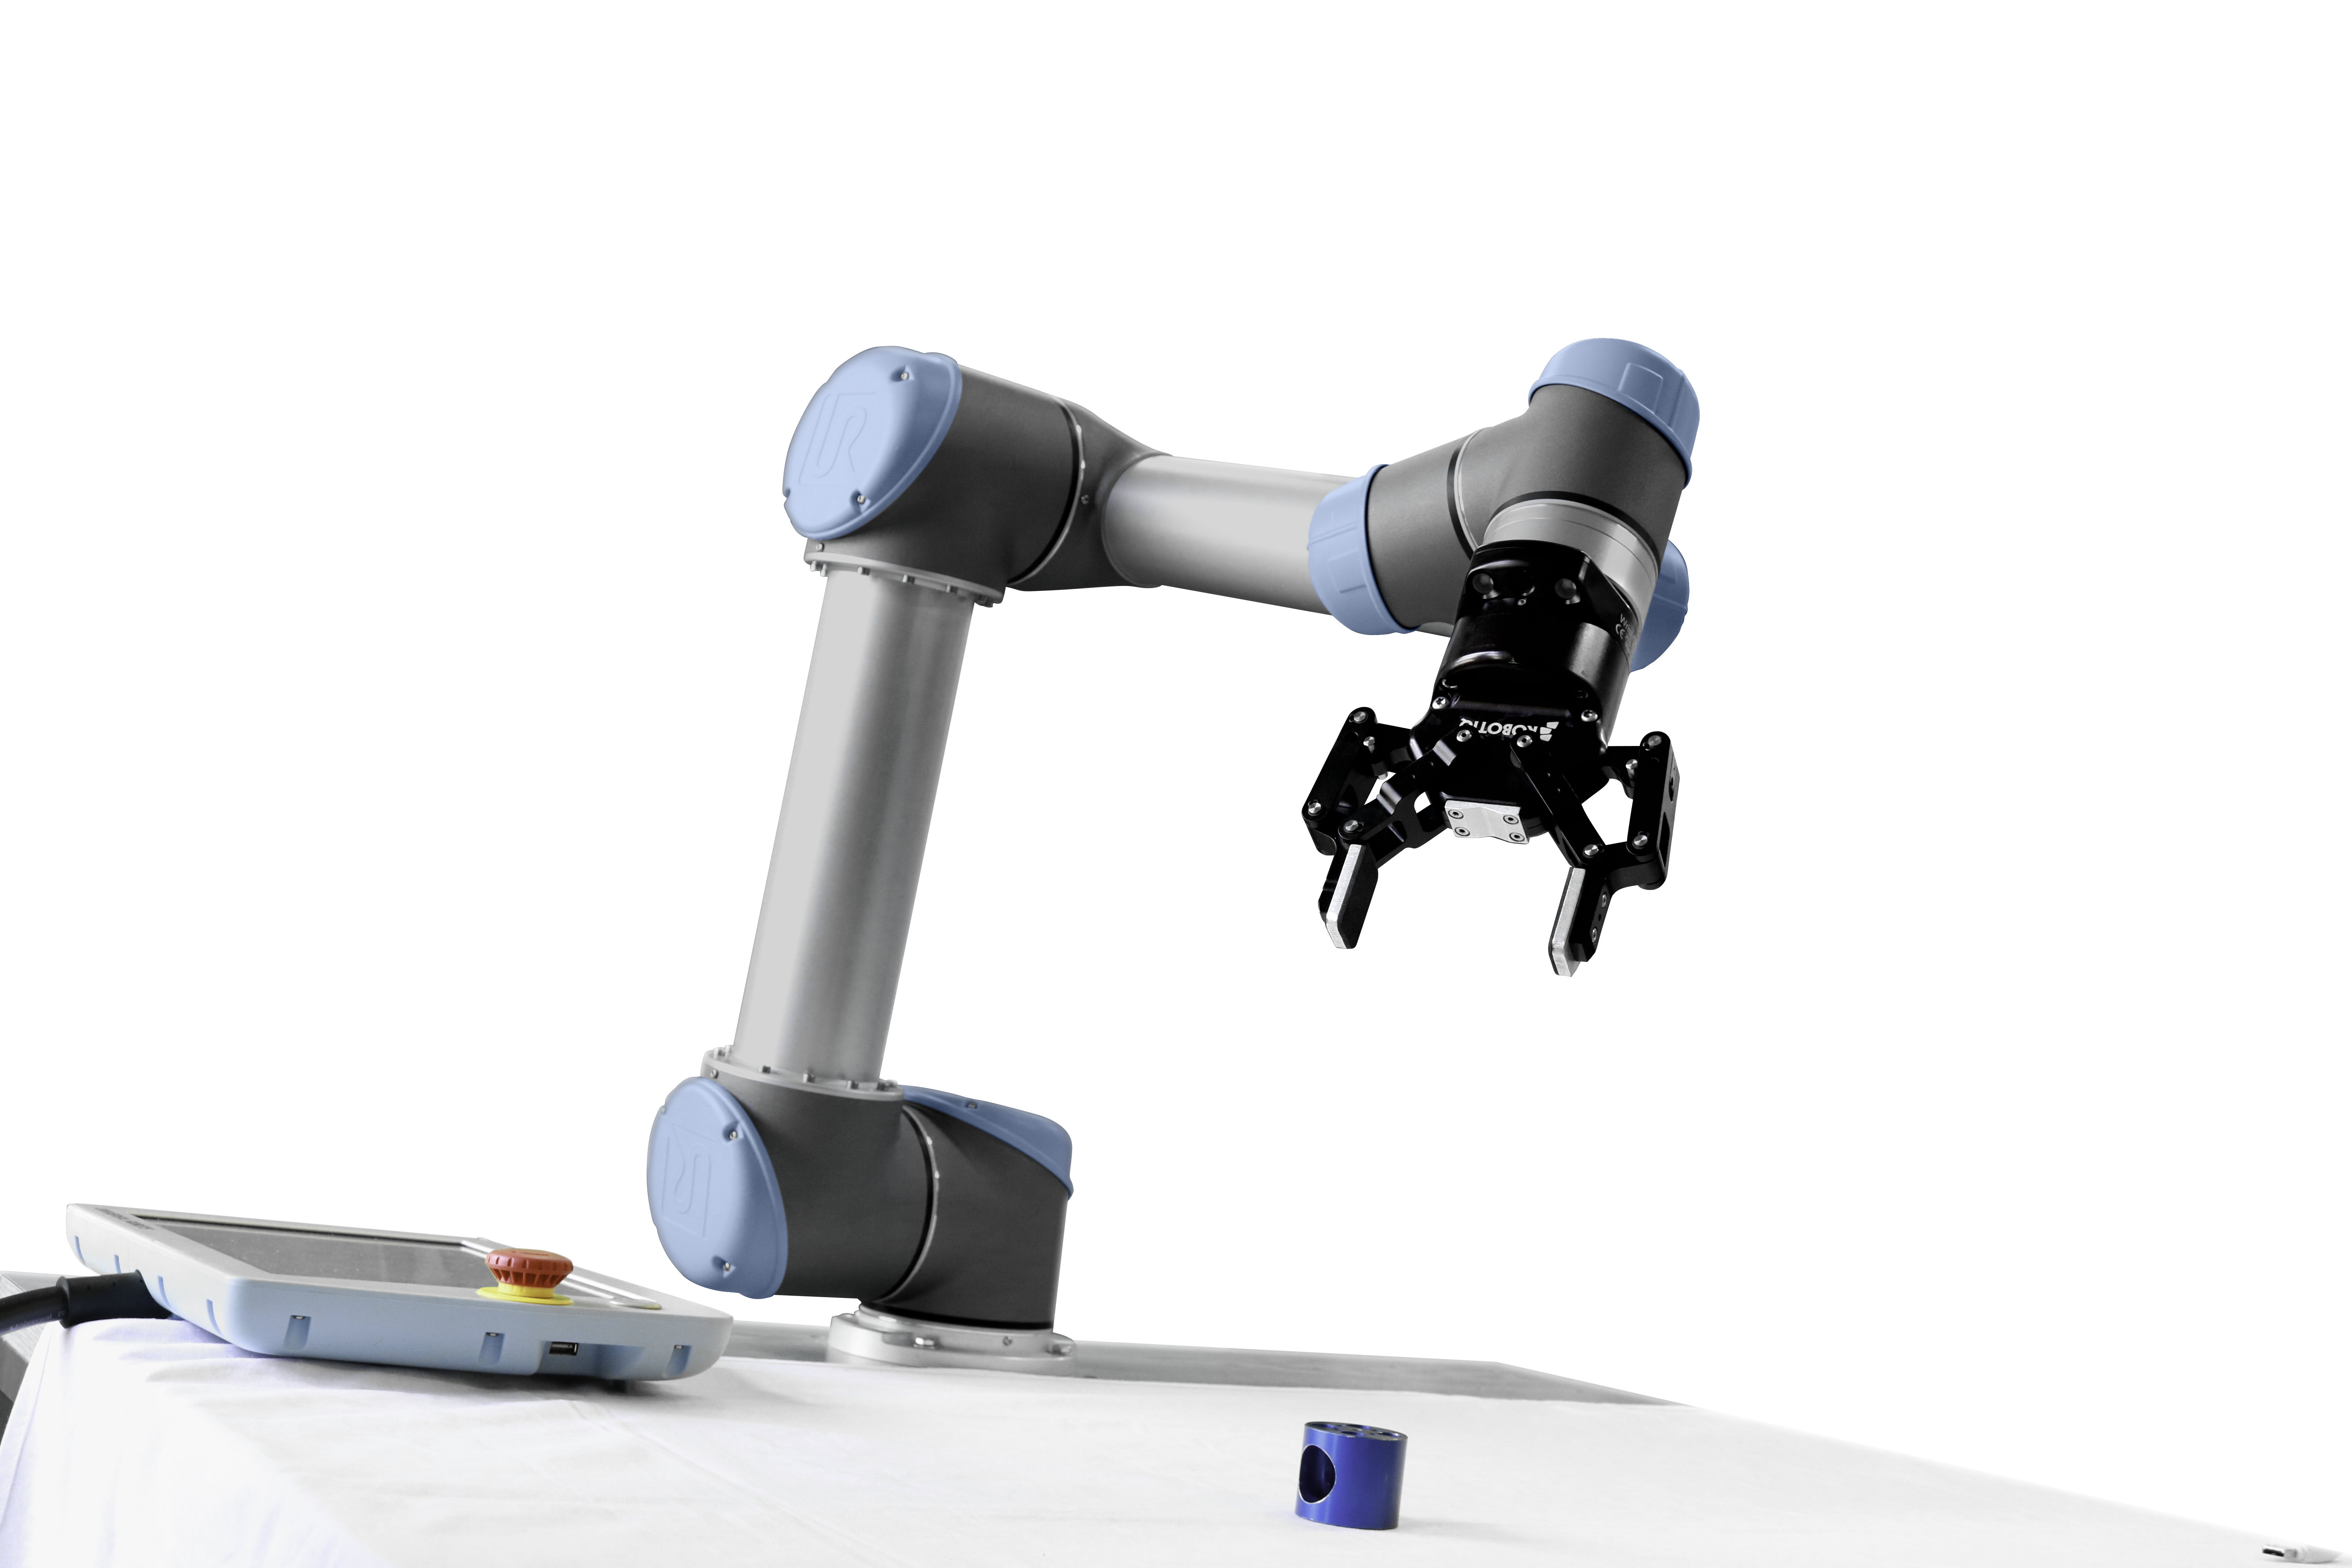 New Robotic Vision Capabilities Break Down Barriers to Automation